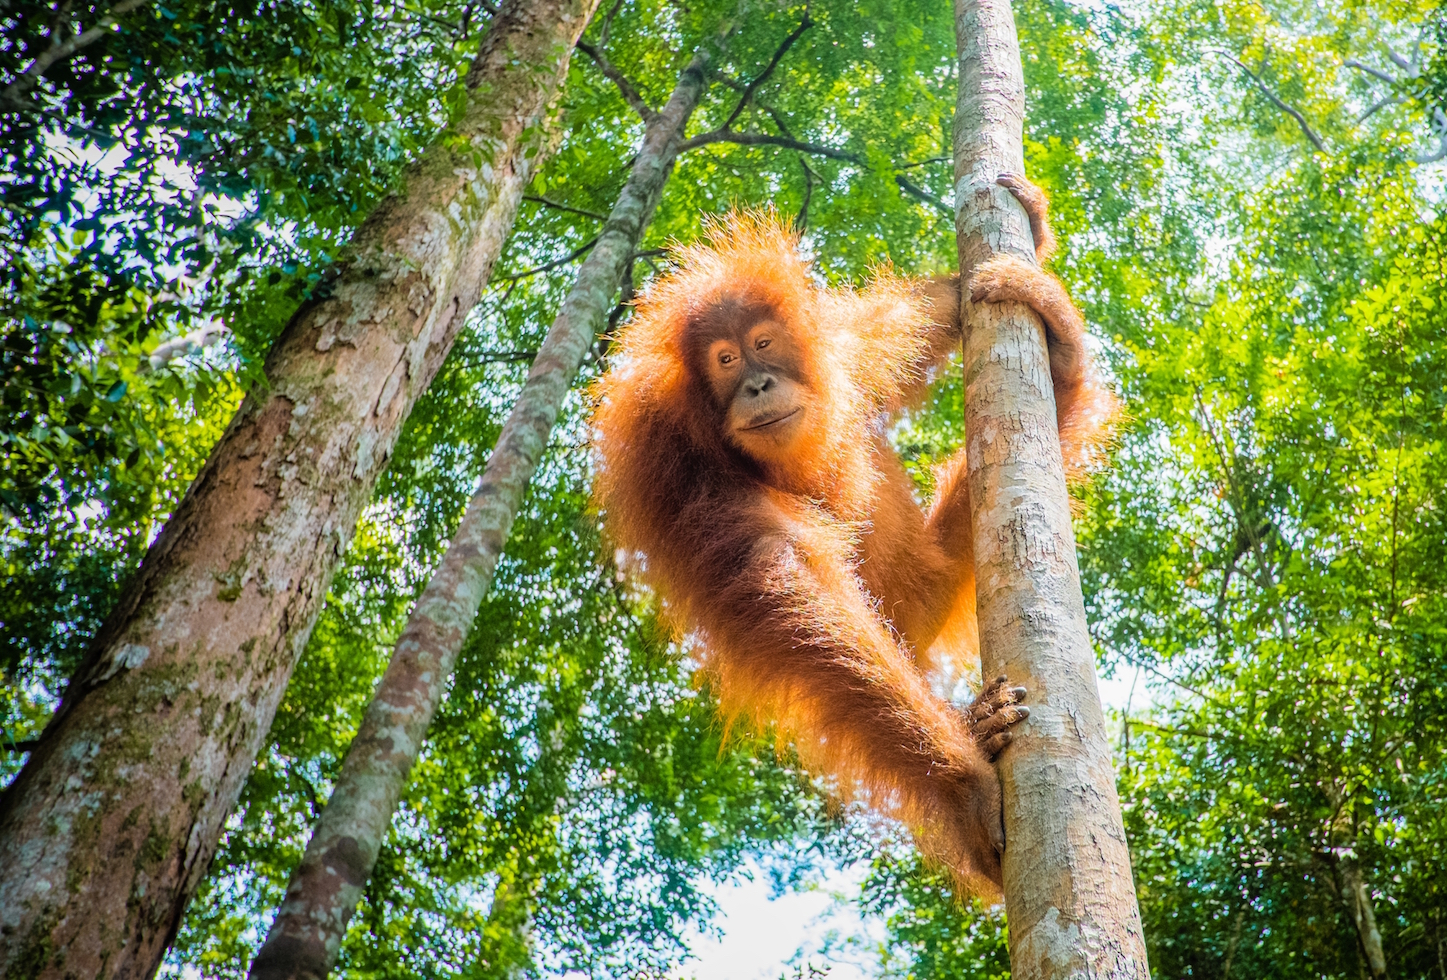 A new study has found that orangutans may have a knowledge of natural medicines that are still unknown to humans.